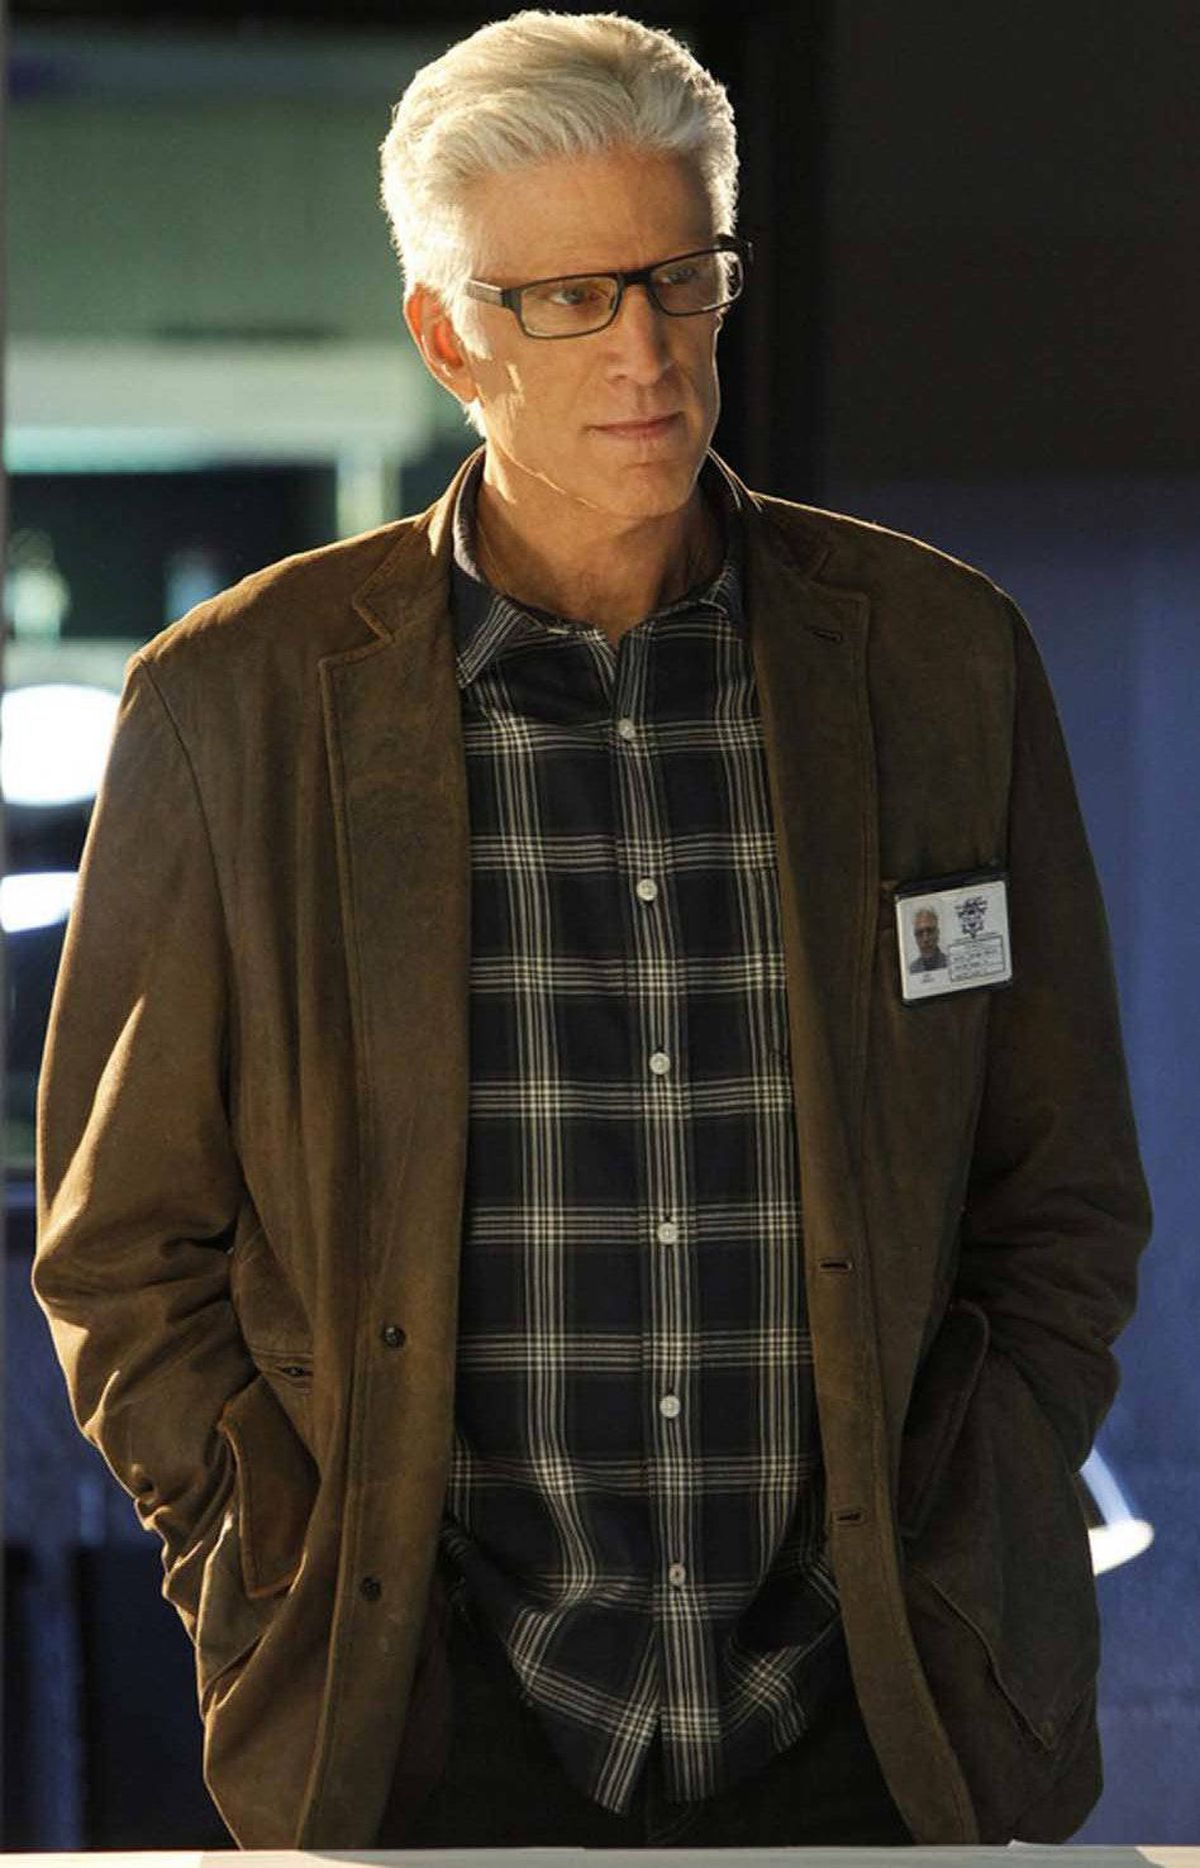 DRAMA CSI CBS, CTV, 10 p.m. ET/PT Hey, remember when CSI used to specialize in grisly crime scenes in really unlikely locales, like at a fetish club or LARP event and the like? Tonight's new episode is a throwback of sorts because lab boss D.B. Russell (Ted Danson) brings his test-tube monkeys to investigate a robbery-homicide that took place at an Alice in Wonderland-themed wedding. In other news, the trace tech Hodges (Wallace Langham) freaks out over a looming visit from his mother, who is played by former Charlie's Angels original Jaclyn Smith.